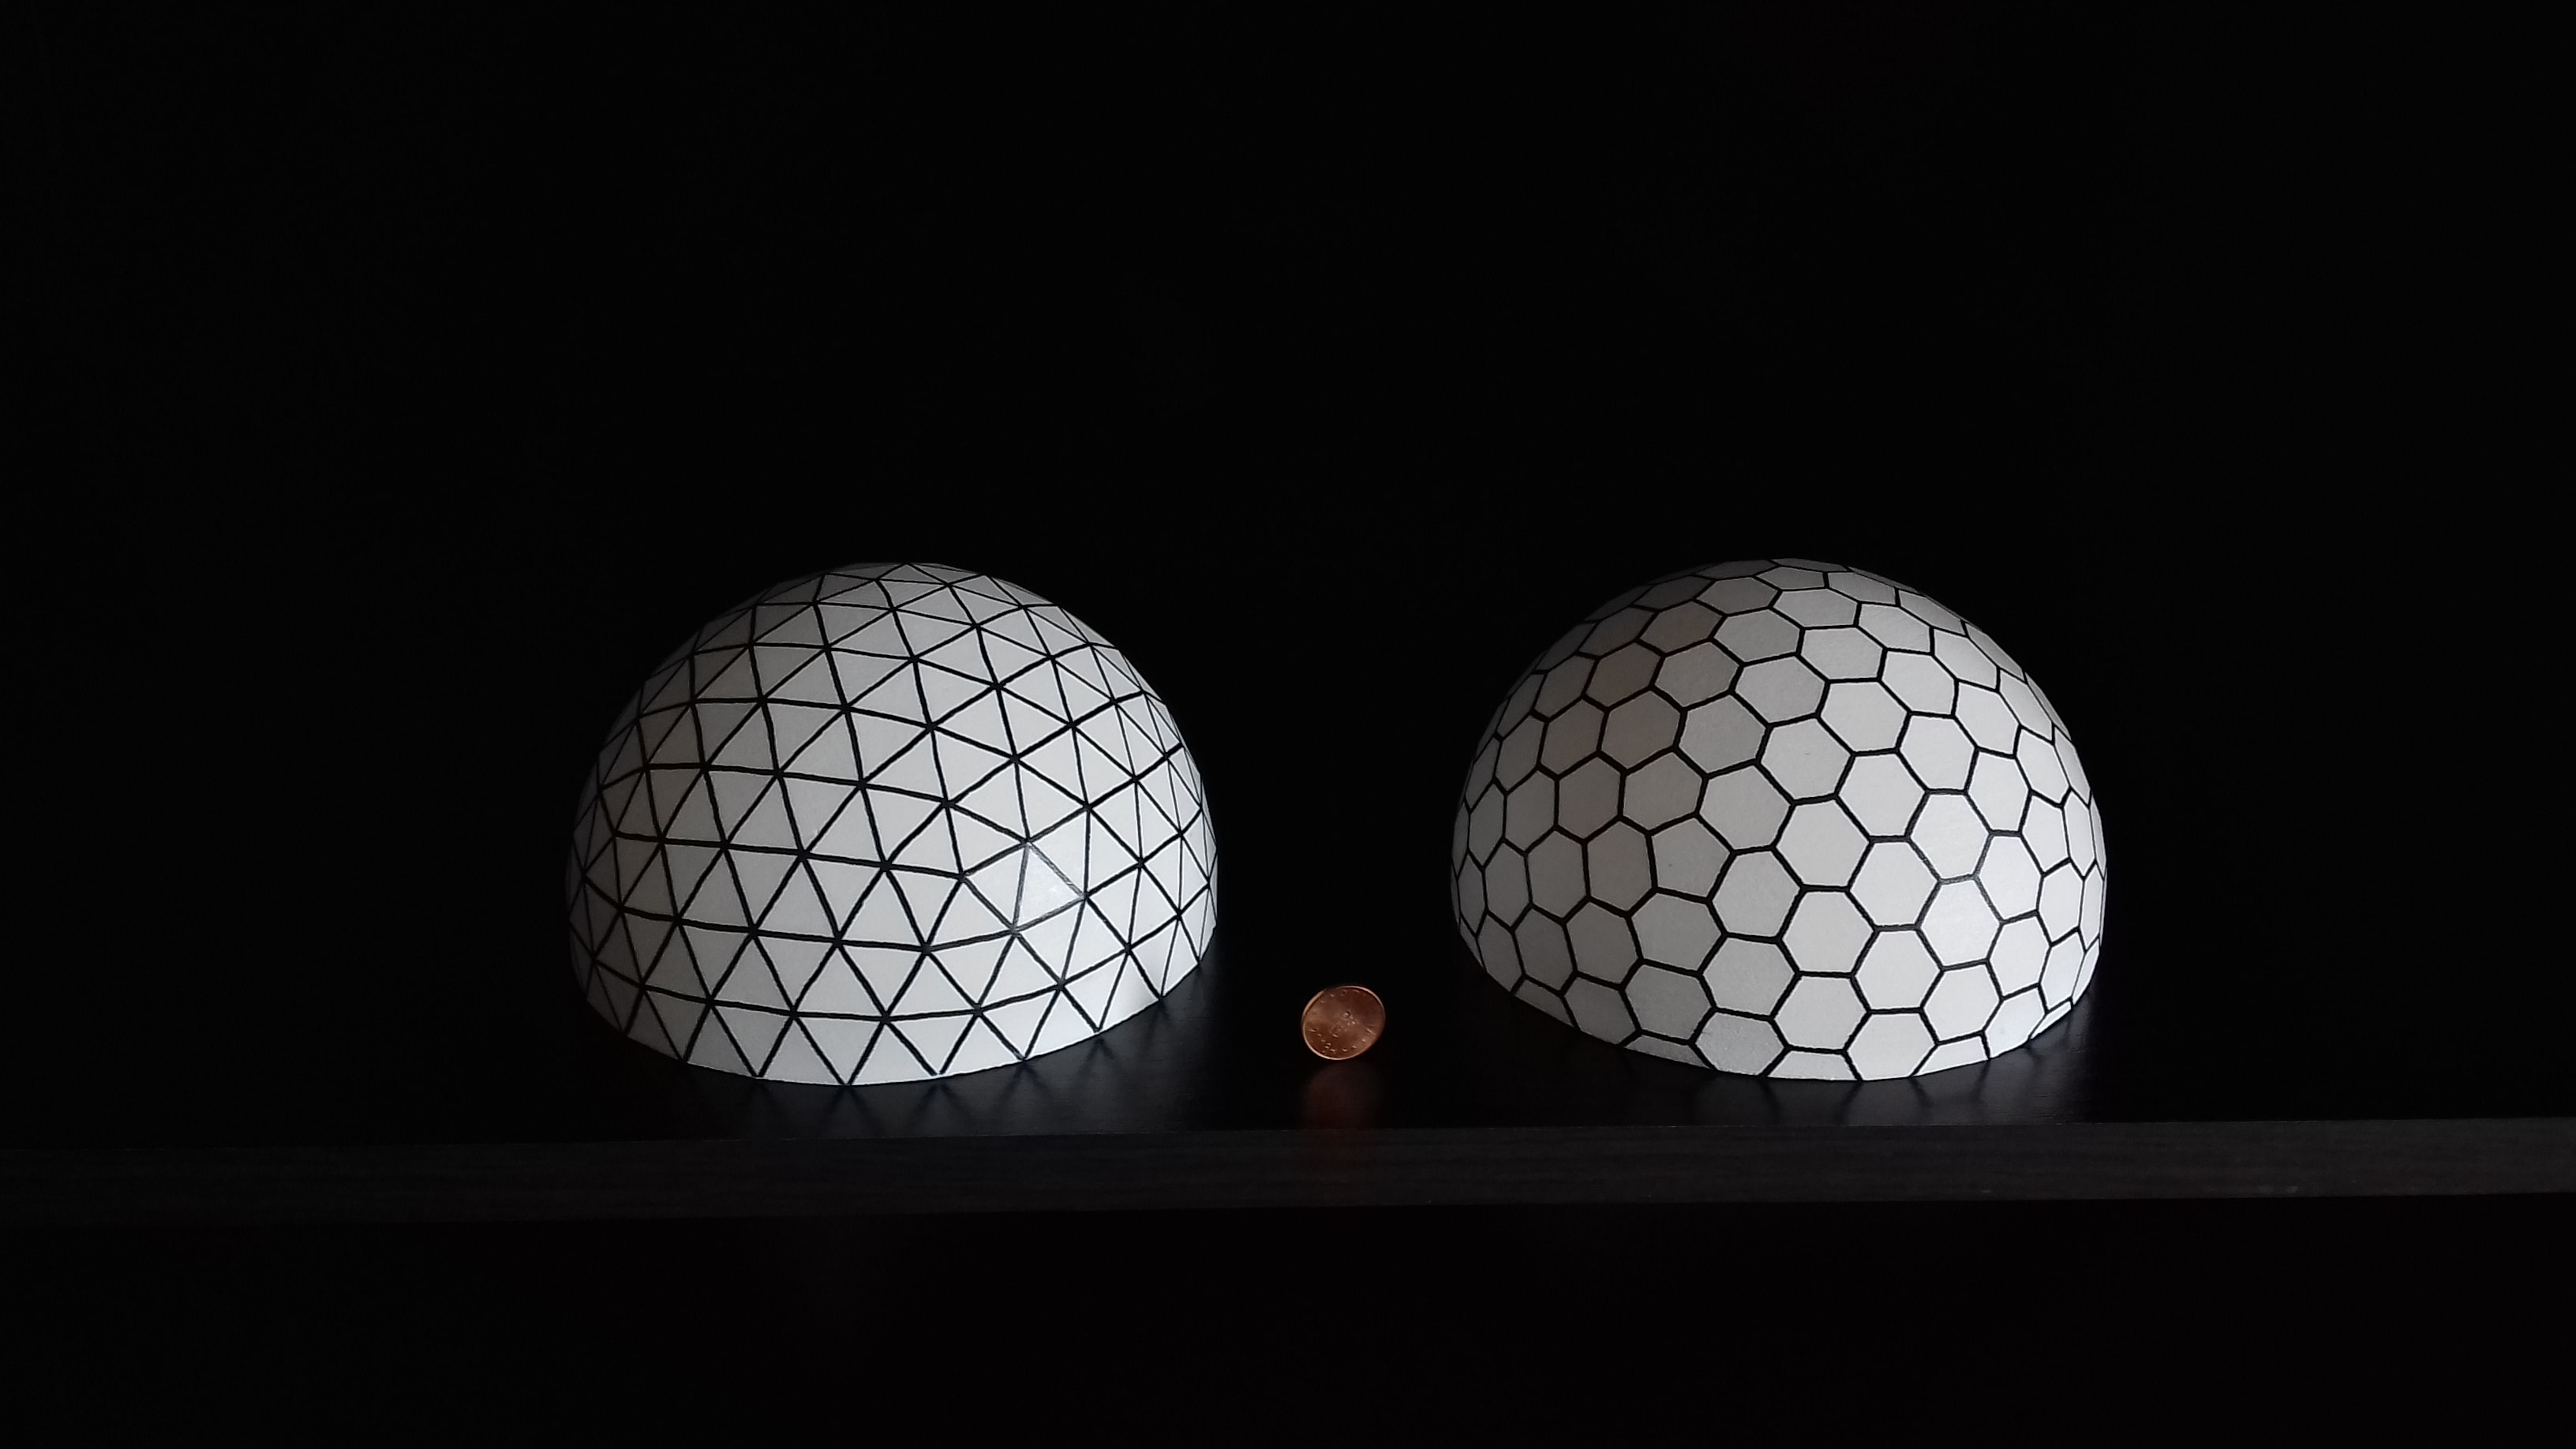 TableTop Dome Models